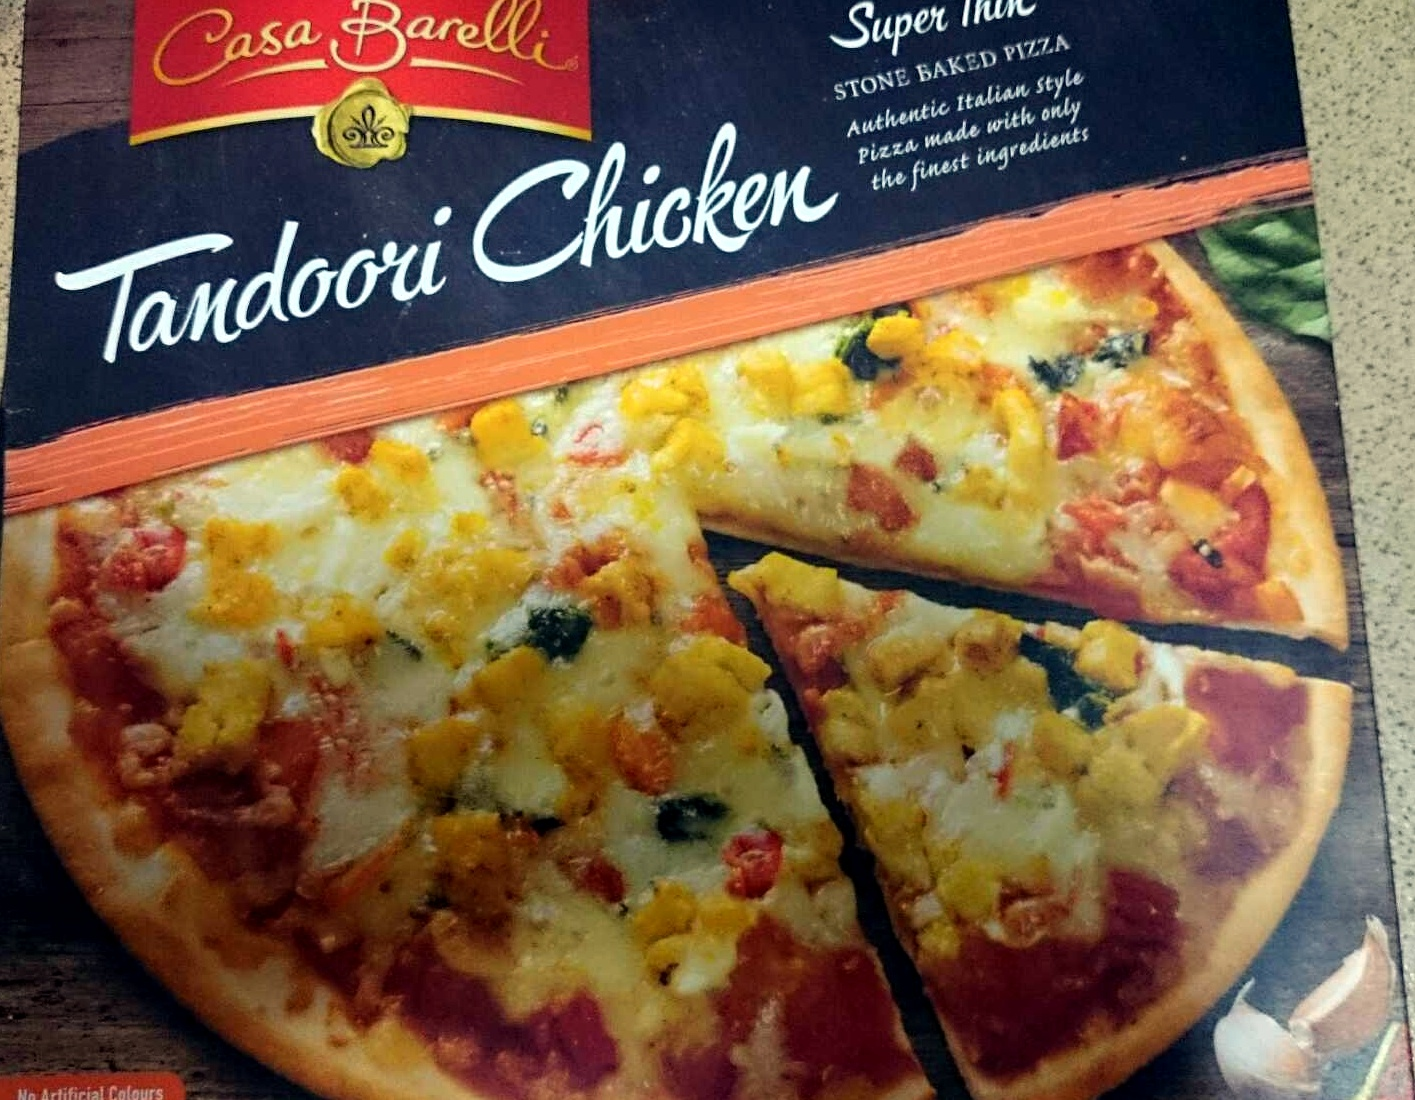 Casa Barelli Tandoori Chicken Super Thin Stone Baked Pizza - Product - en